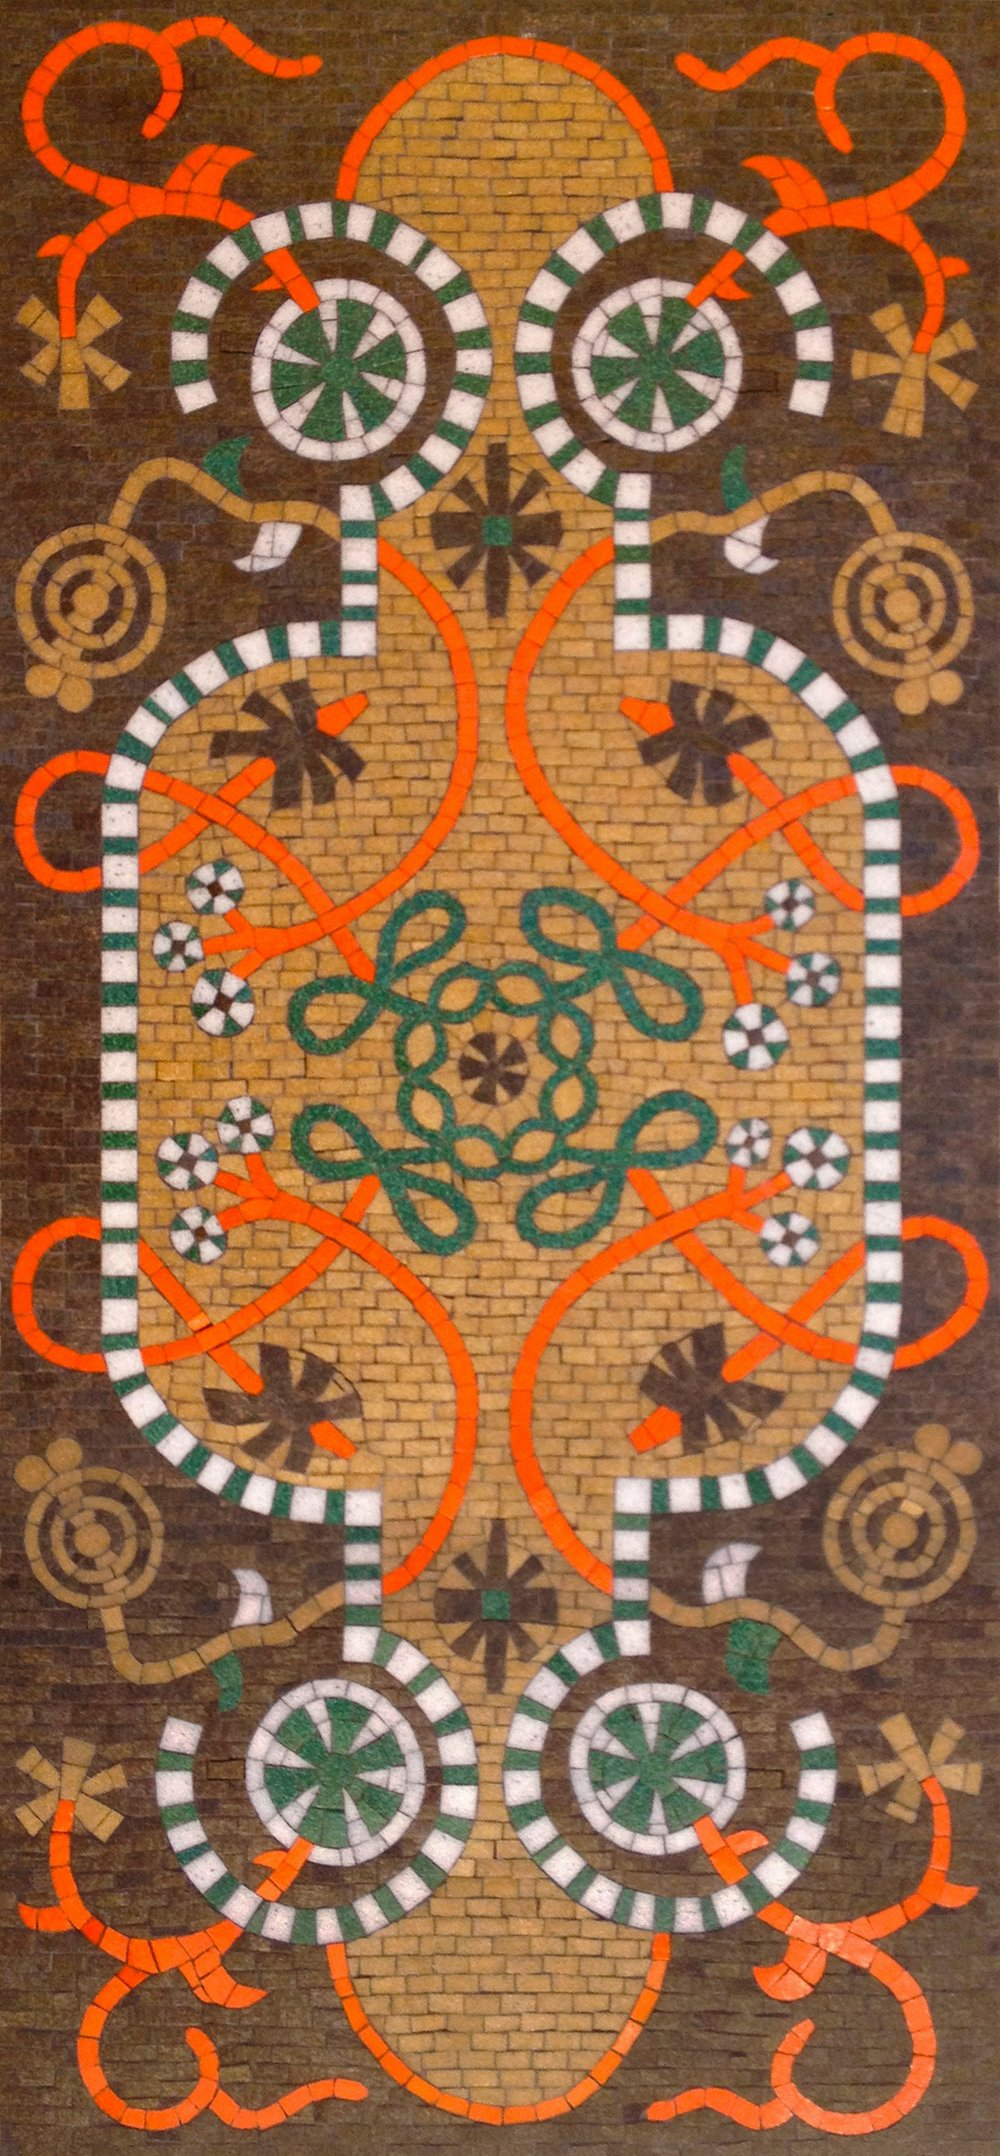 Copy of Fireplace Mosaic Rugs